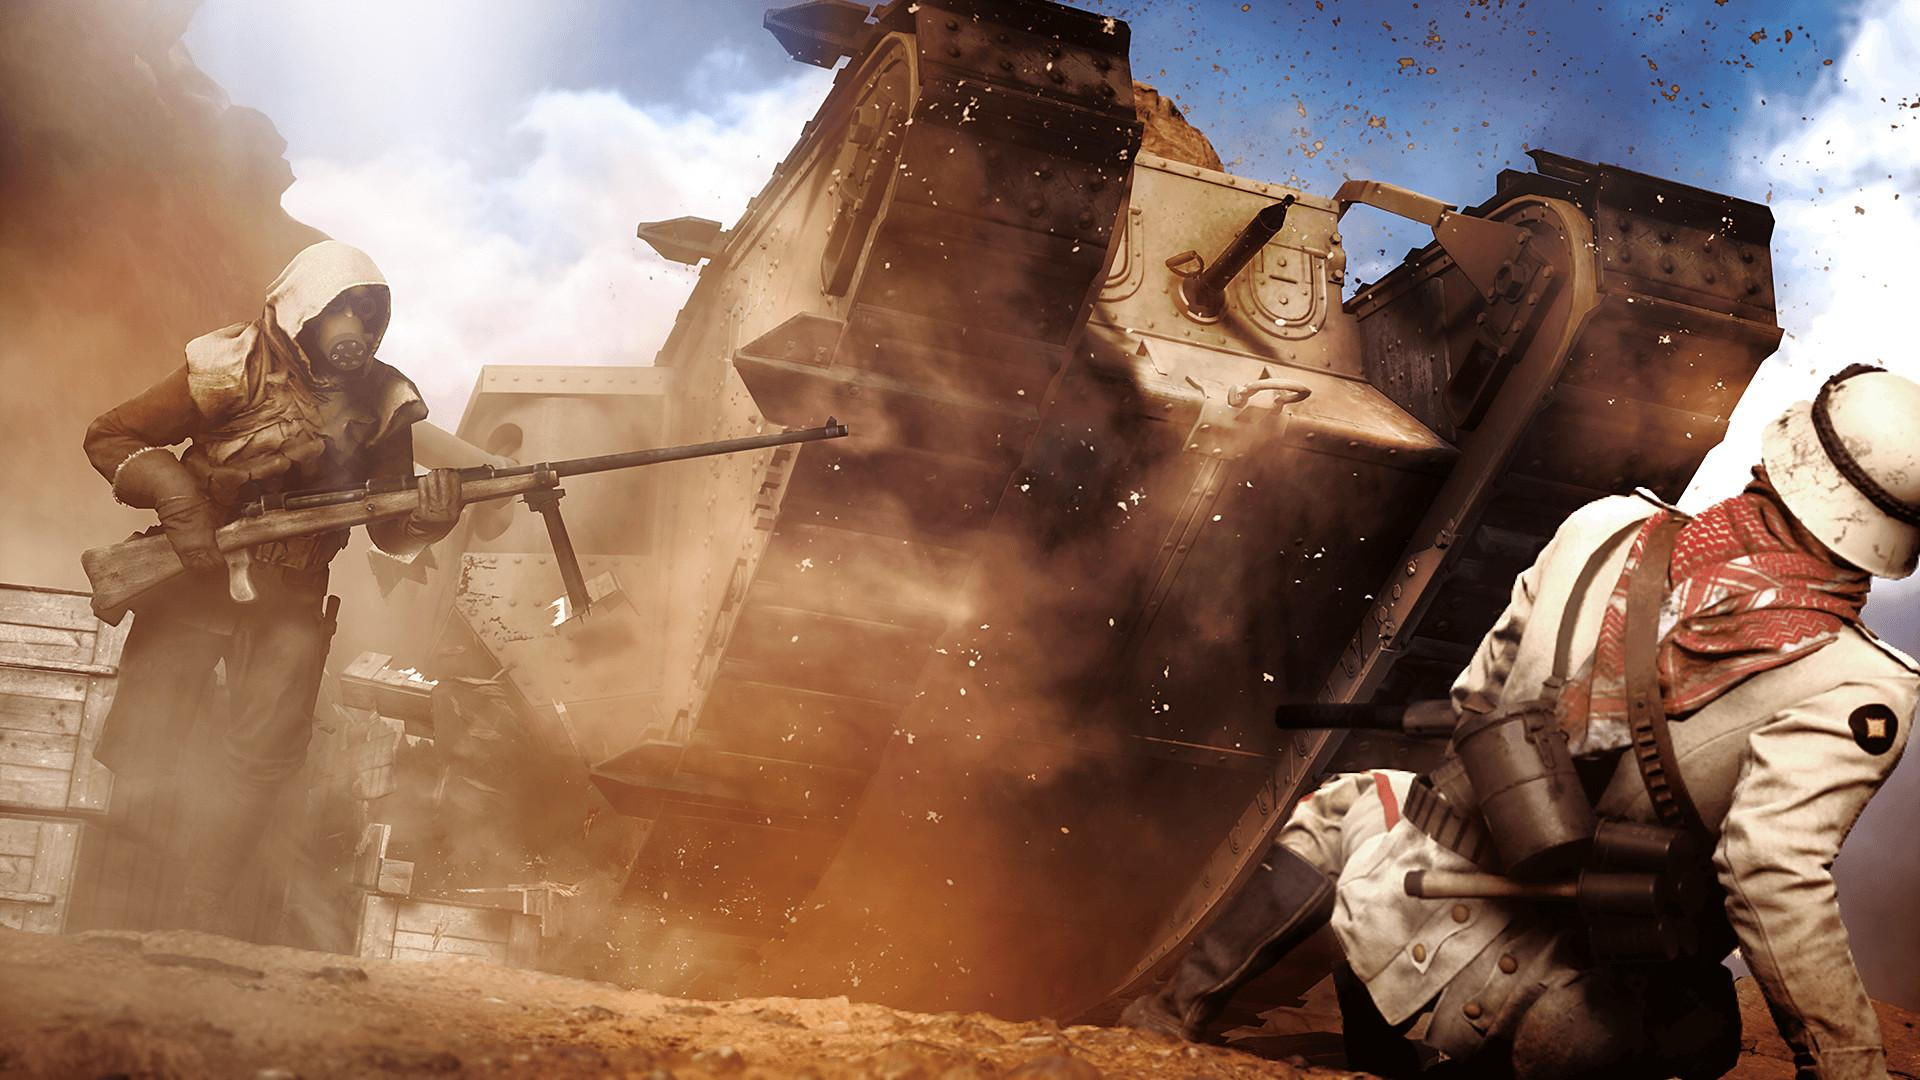 Battlefield 1 paid special attention to historical accuracy, from the uniforms of each soldier to the arsenal of weapons, gadgets and vehicles